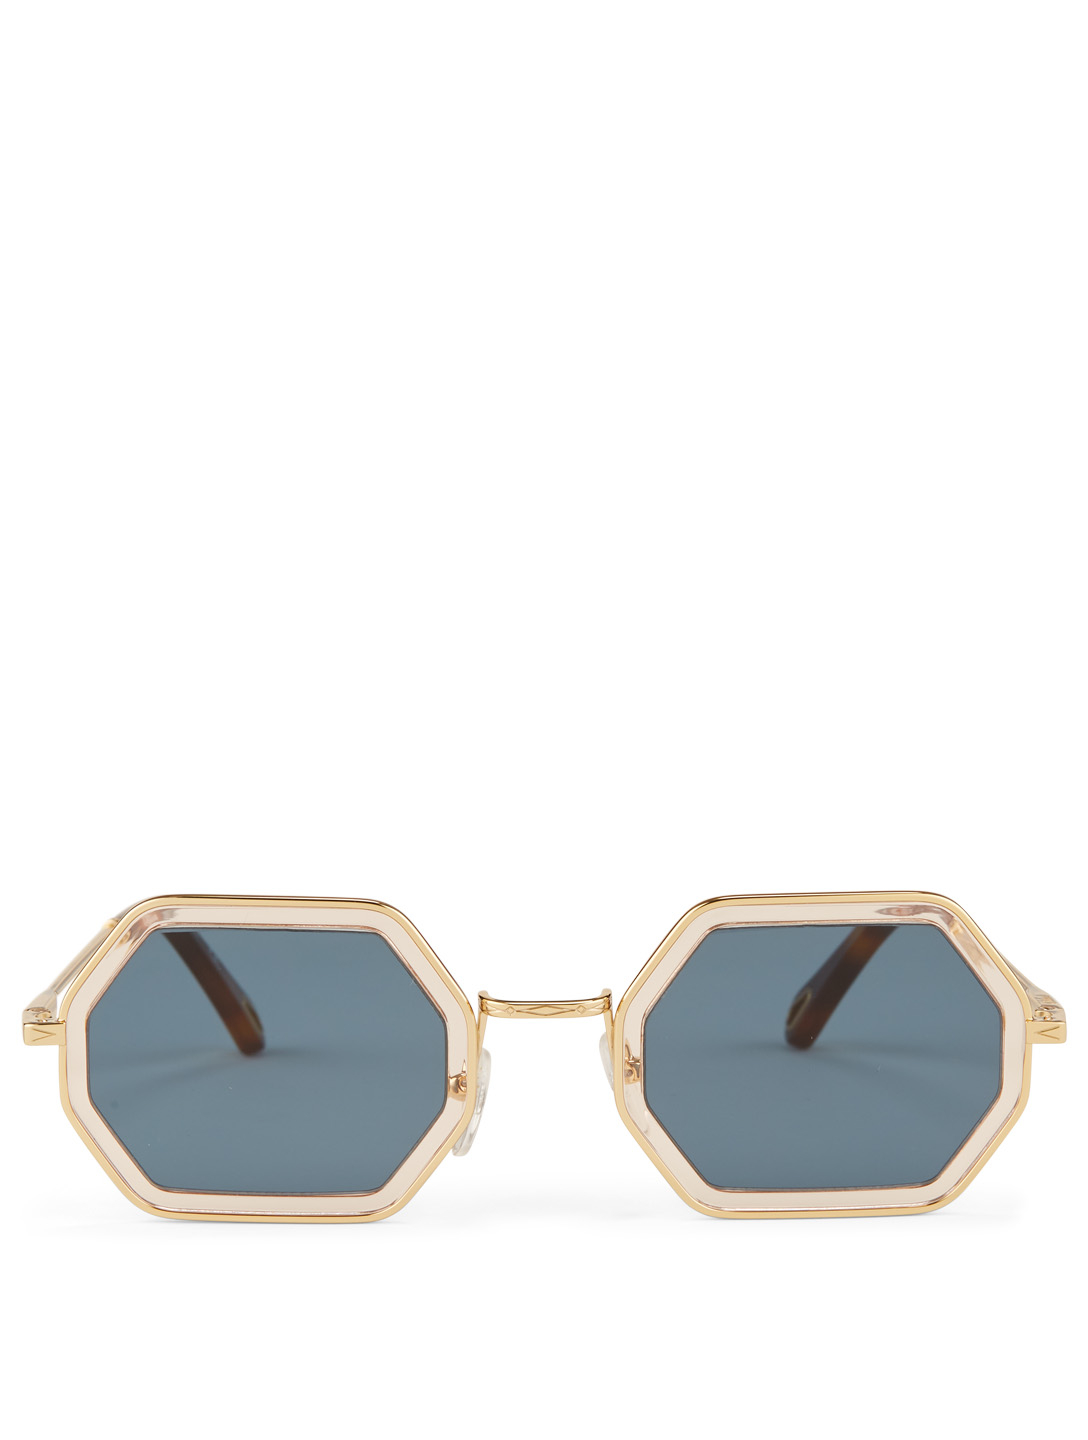 68fcdc2ec CHLOÉ Tally Small Geometric Sunglasses | Holt Renfrew